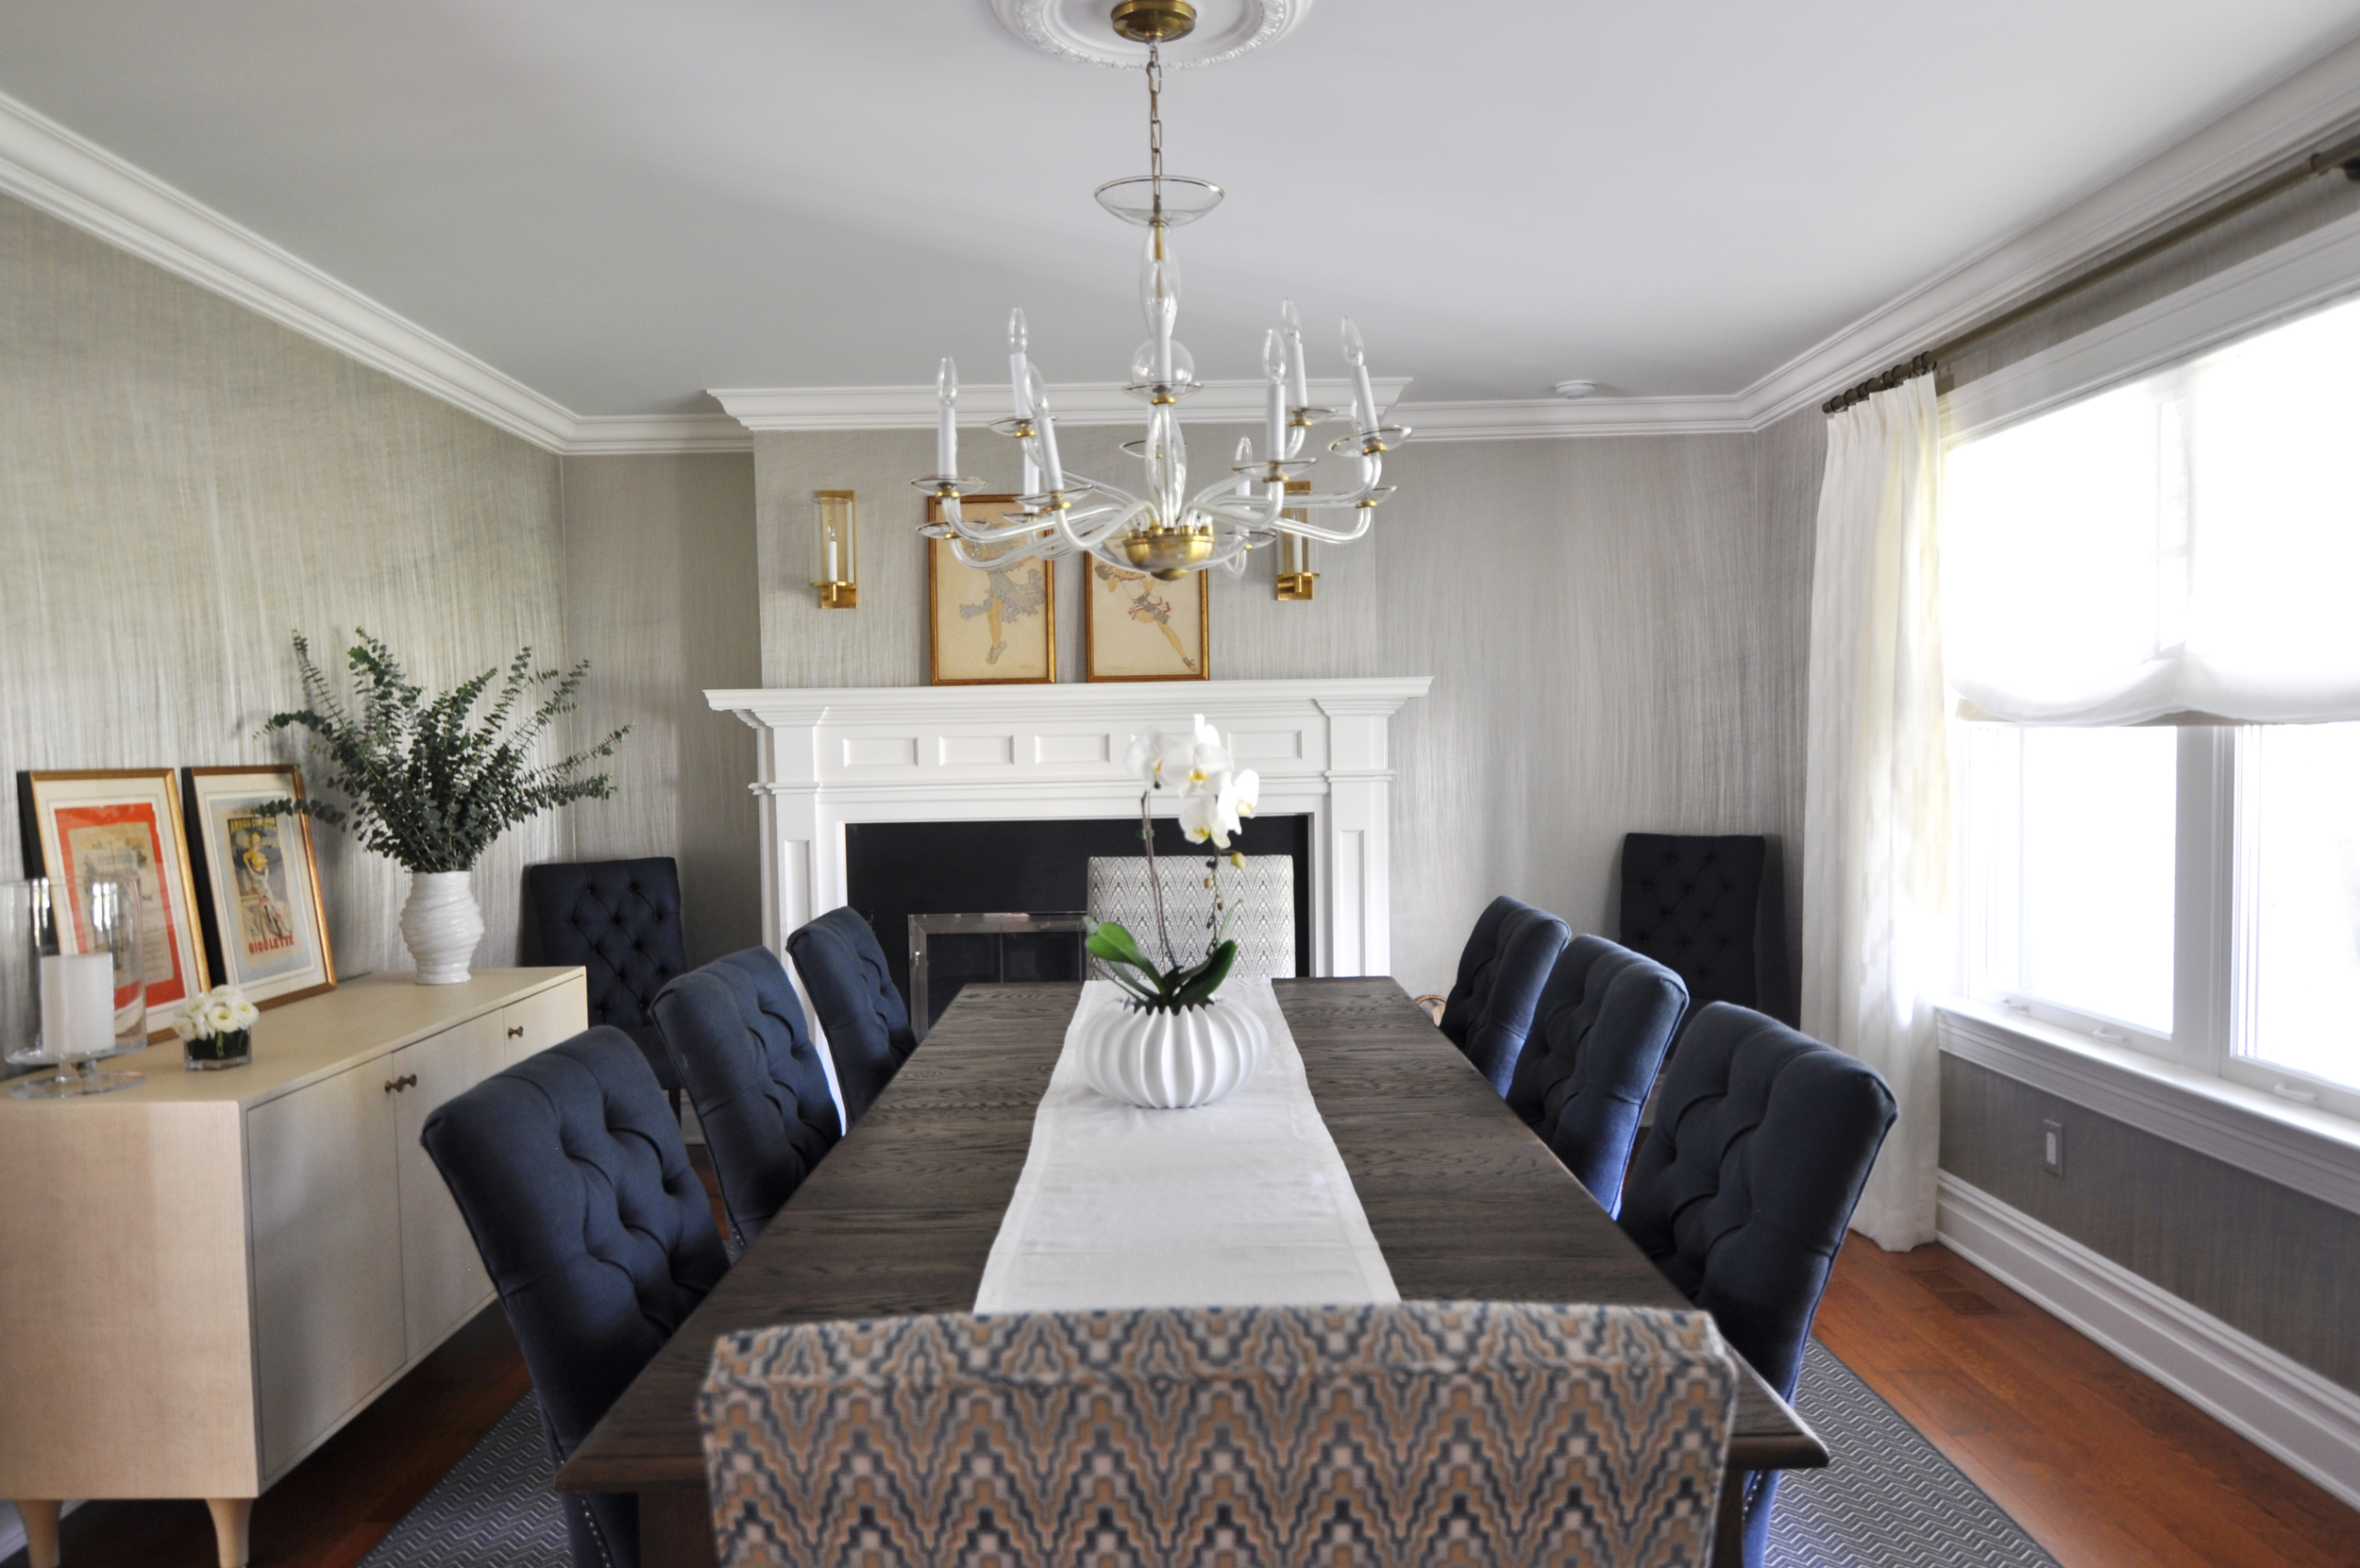 "CLASSIC DINING ROOM , Mamaroneck, NY: When the homeowners moved into their new dream home, they brought with them their dining table, chairs and chandelier, but envisioned a more finished, inspired space. The host chairs were reupholstered in a graphic navy blue and gold chevron that adds a fresh, yet classic look. Walls are covered in a vertical metallic ""moonstone"" colored wall-covering to add a sense of drama fitting for their vintage glass and brass chandelier.  Antique brass and glass hurricane sconces above the mantel add contemporary style and complement the vintage chandelier. Ivory linen sheer drapery and Roman shades for the large front window wall provide a light, easy style that counters the heavier dark wood table. An off-white  textured faux raffia buffet with brass knobs  sits on the chevron navy area rug ready to use as a serving area for the next dinner party."